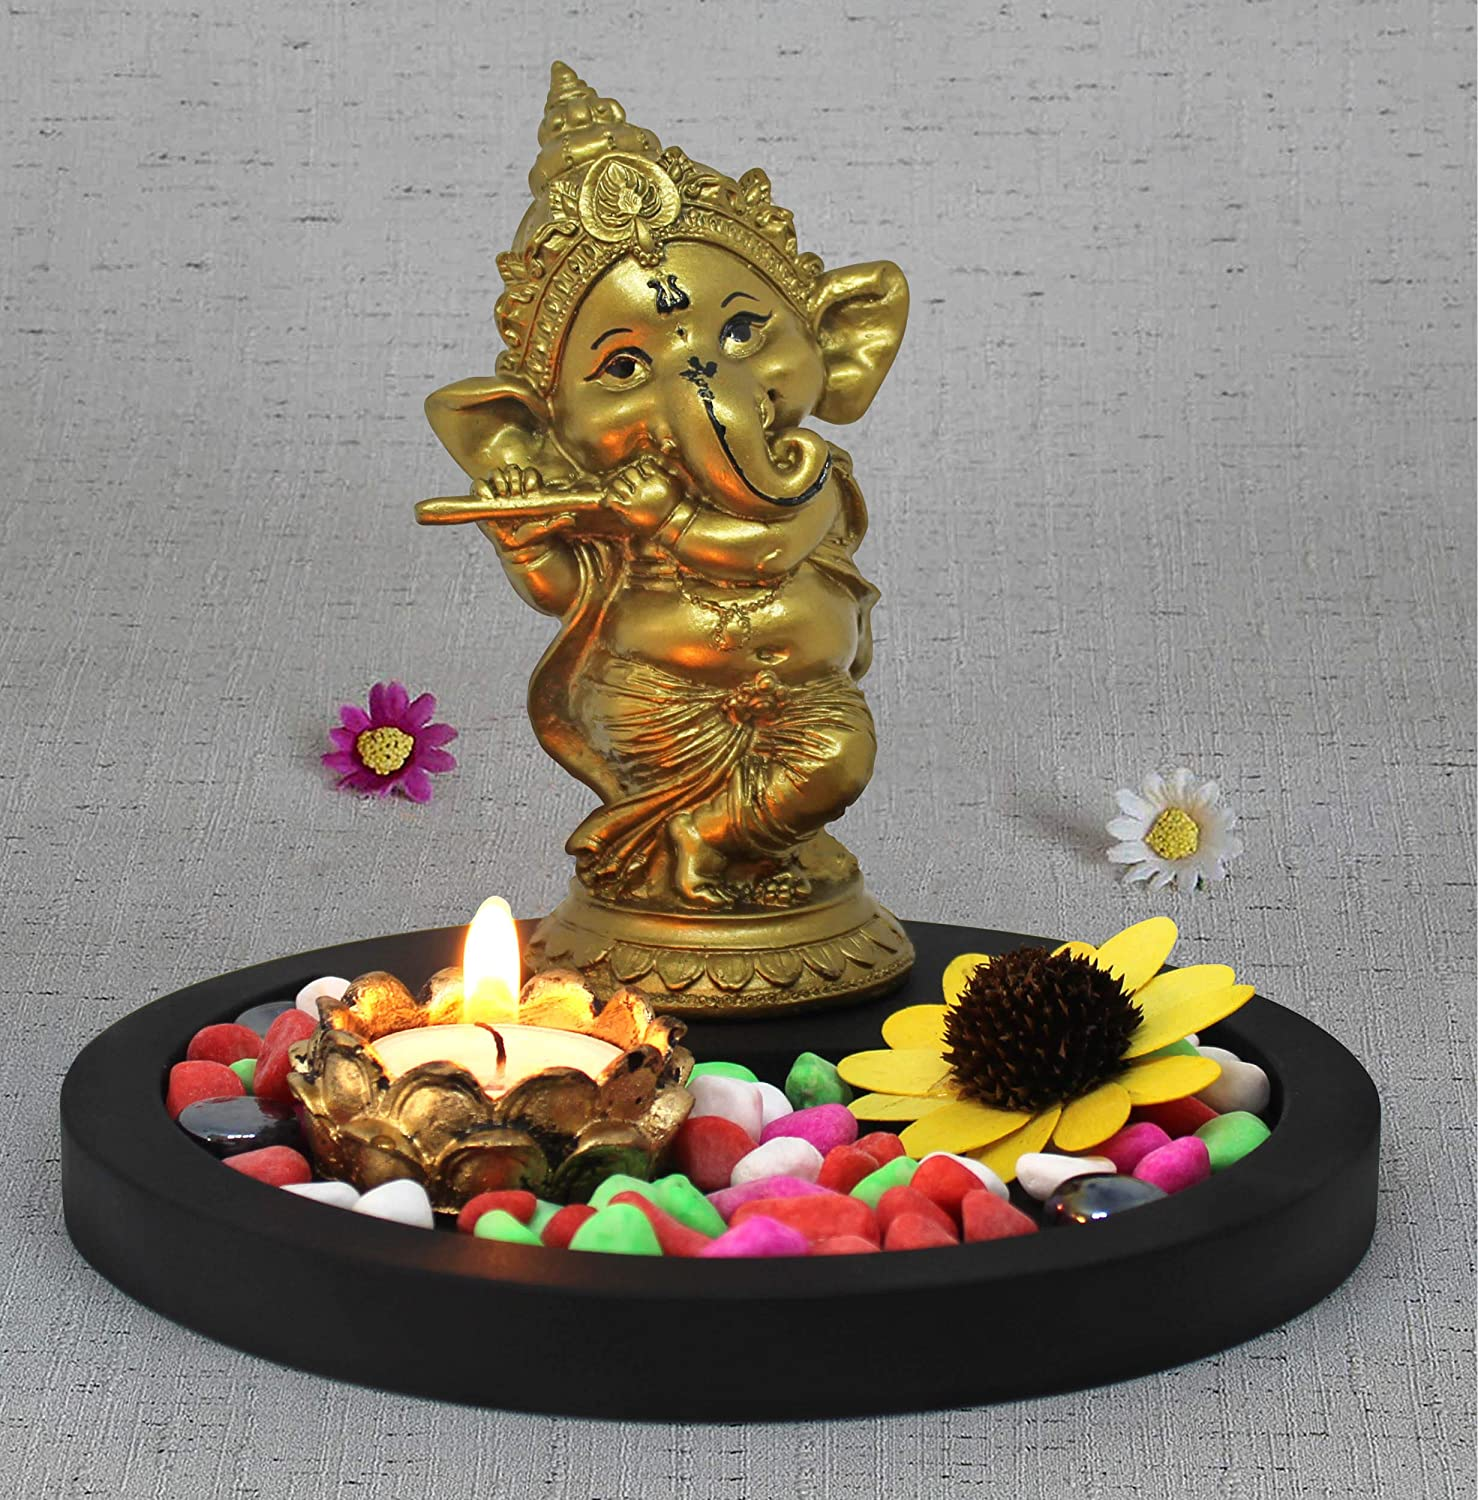 TIED RIBBONS Ganesha Idol Playing Bansuri Figurine with Tealight and Stones on Wooden Tray Centerpiece - Decorative Item for House Warming Home Decoration and Diwali Gifts